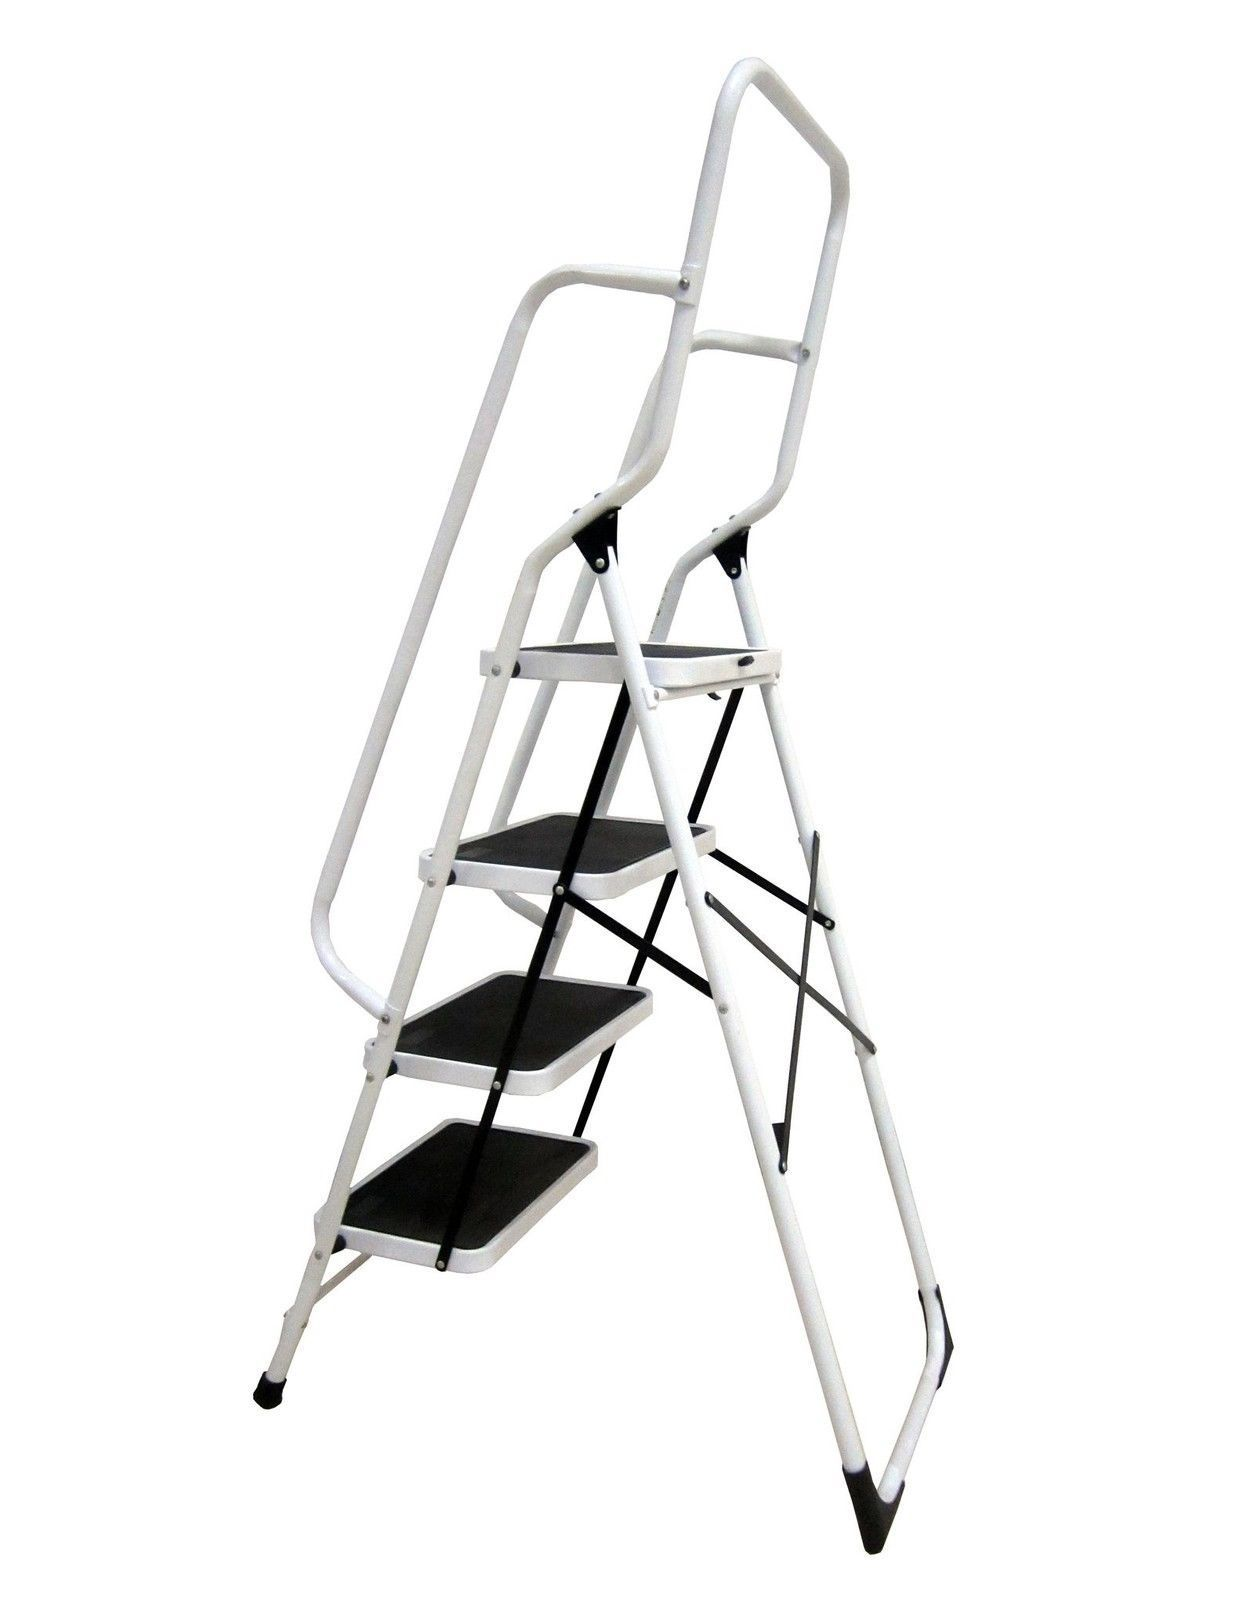 Heavy Duty Foldable 4 Step Ladder With Safety Handrail Non Slip Steps Steel